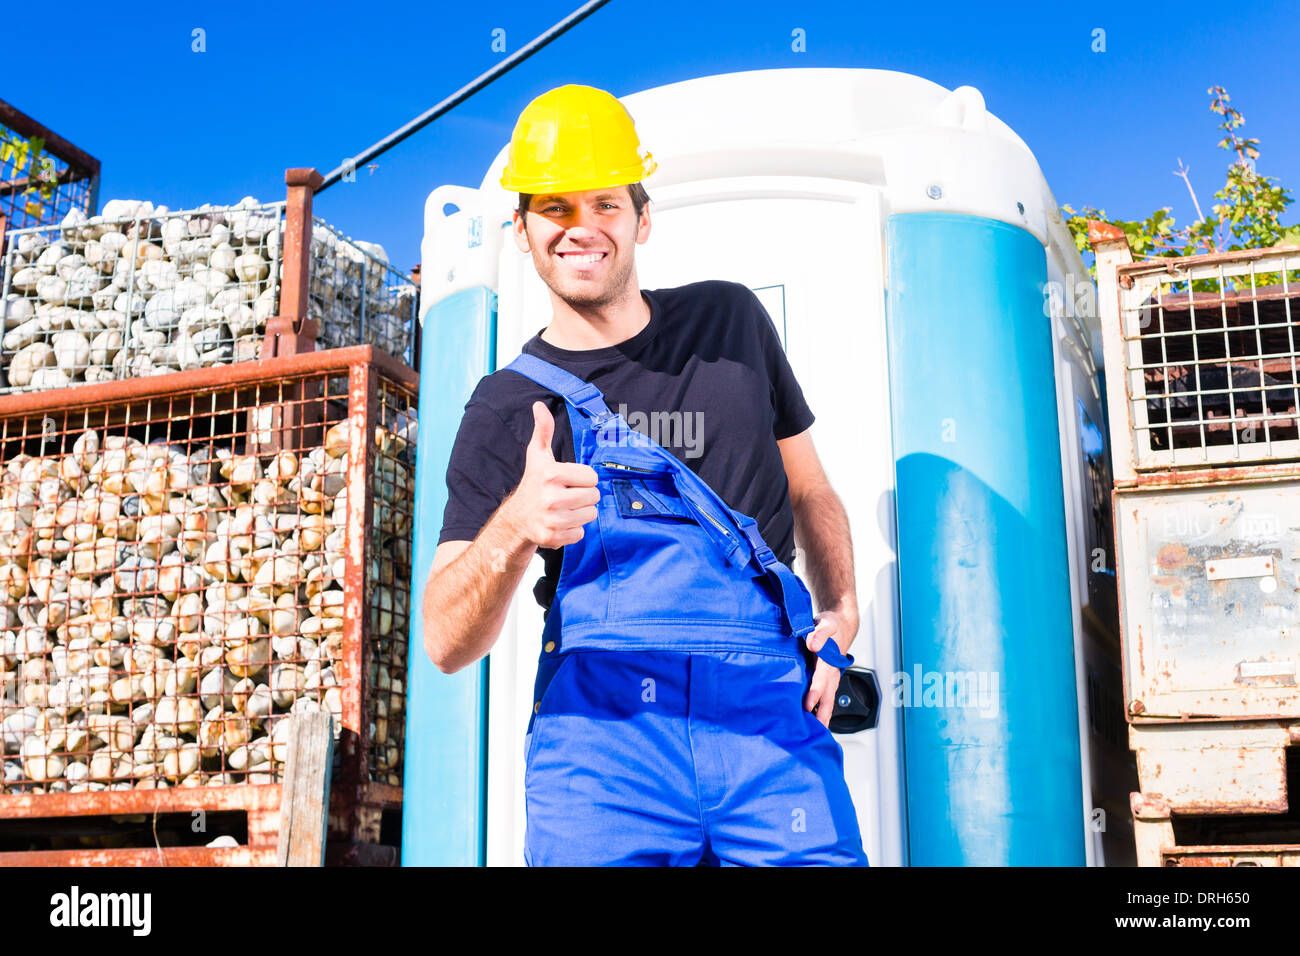 Stock Photo   builder using mobile restroom or chemical toilet on  construction or building site. builder using mobile restroom or chemical toilet on construction